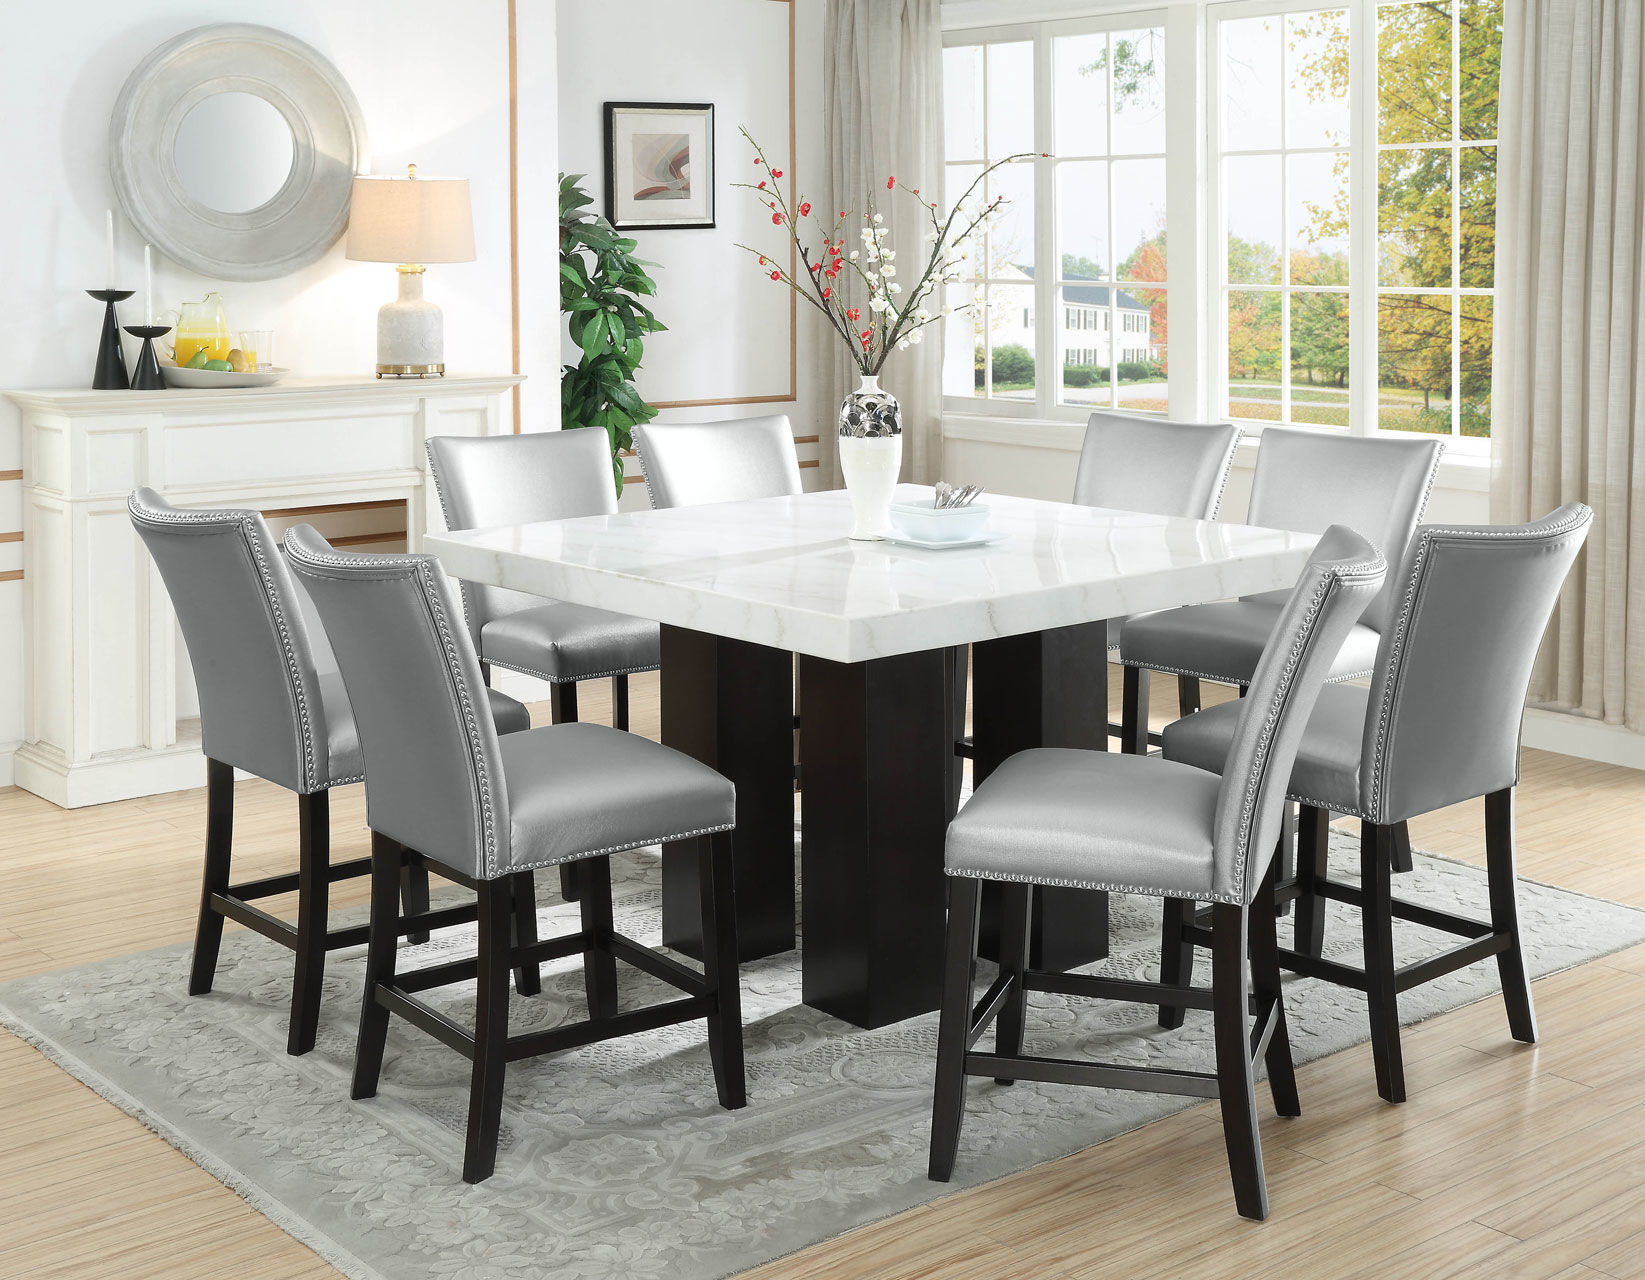 Picture of CARMEN 7PC SQUARE COUNTER HEIGHT DINING SET W SILVER STOOLS - 540